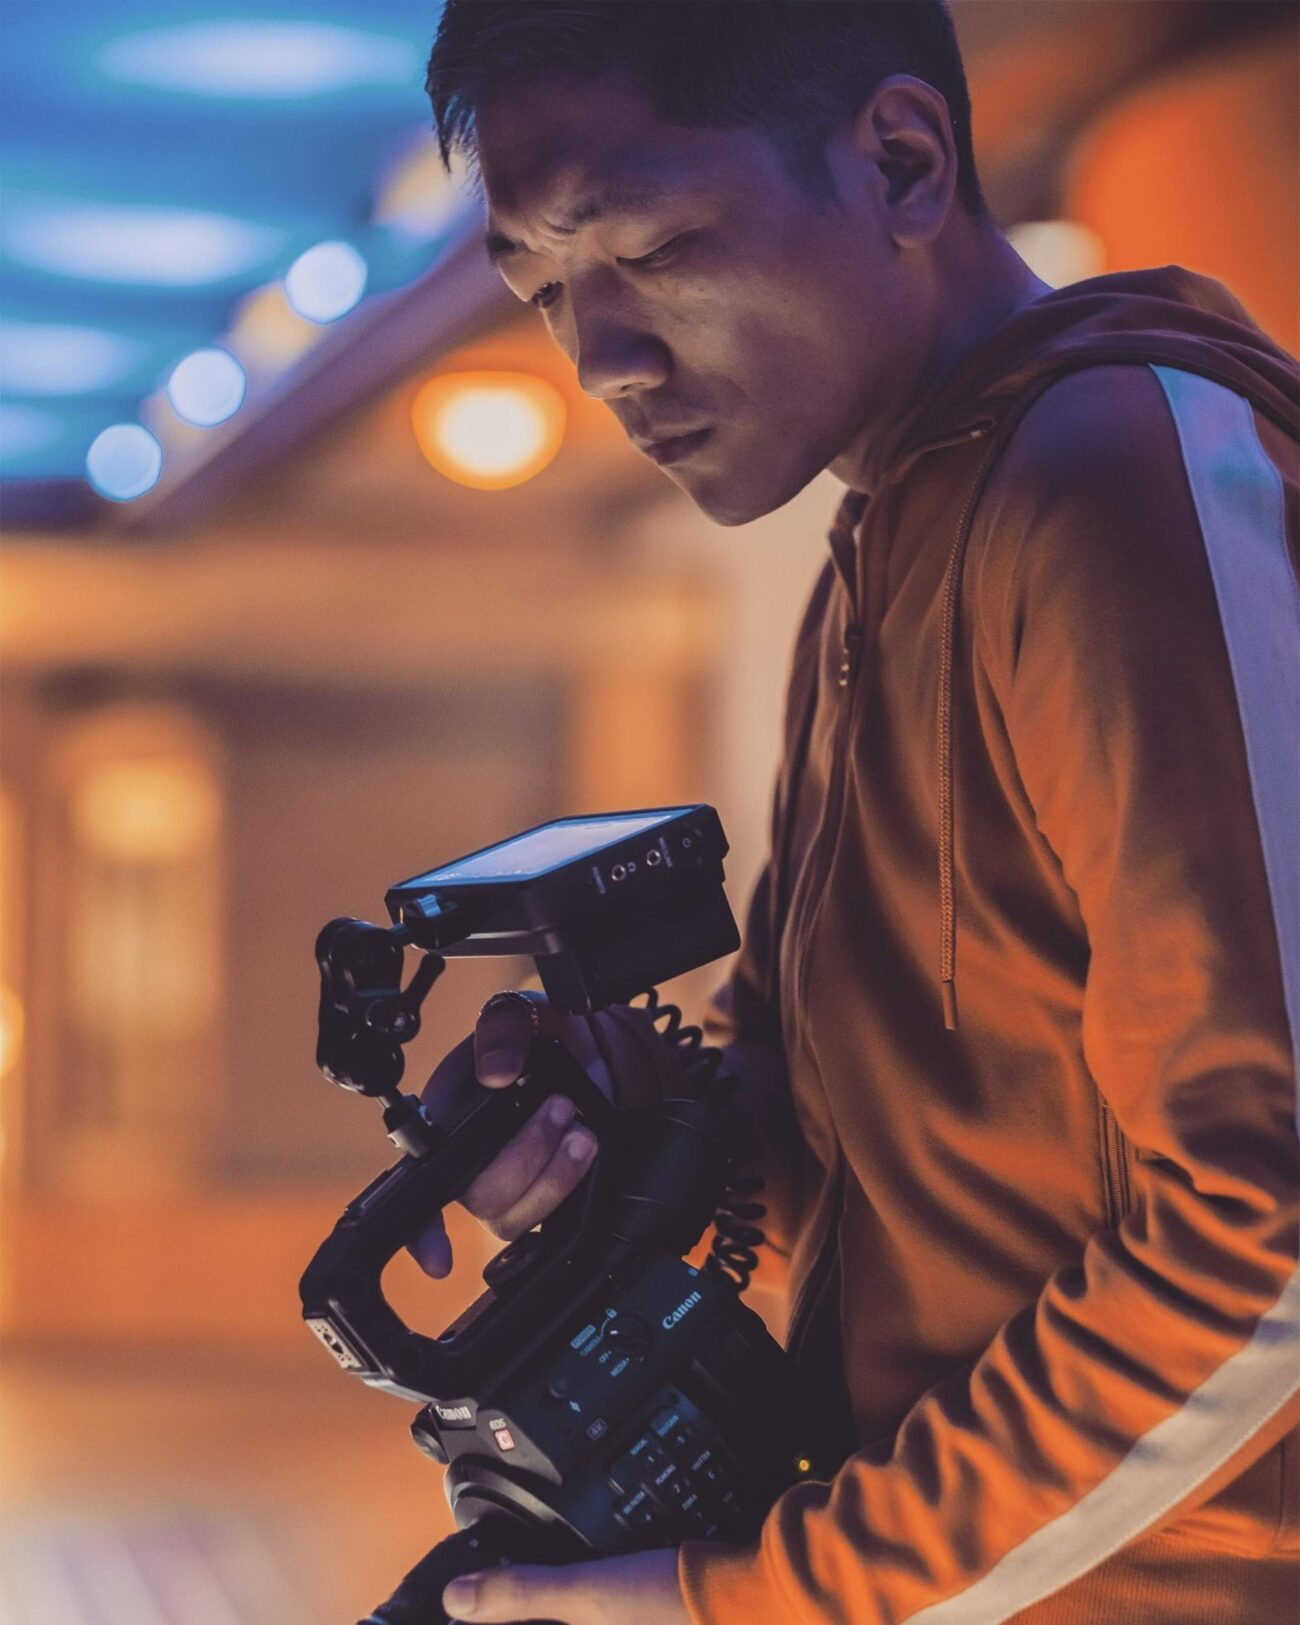 Blake Ridder is a writer, actor, and director with a slew of short films and docs. Find out why Ridder is poised to be a breakout star.